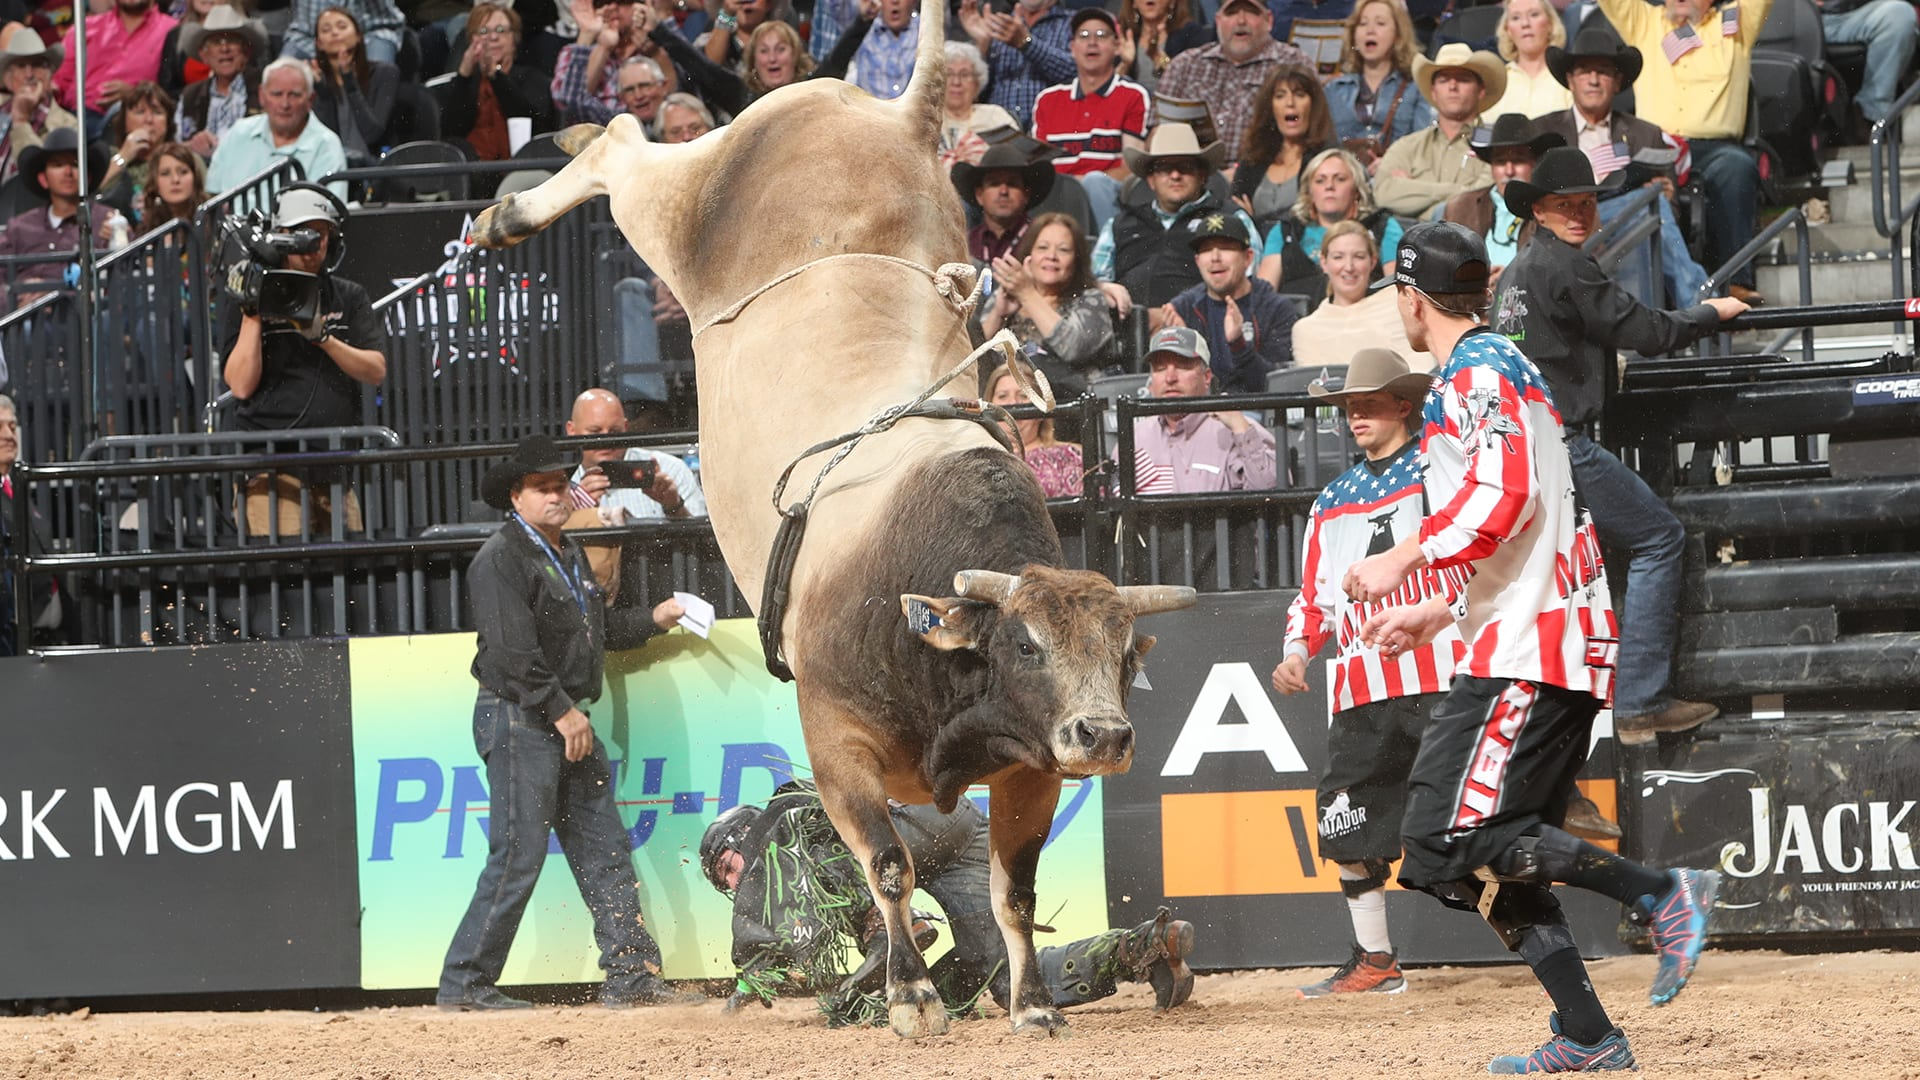 SweetPro's Bruiser to buck in Texas this weekend